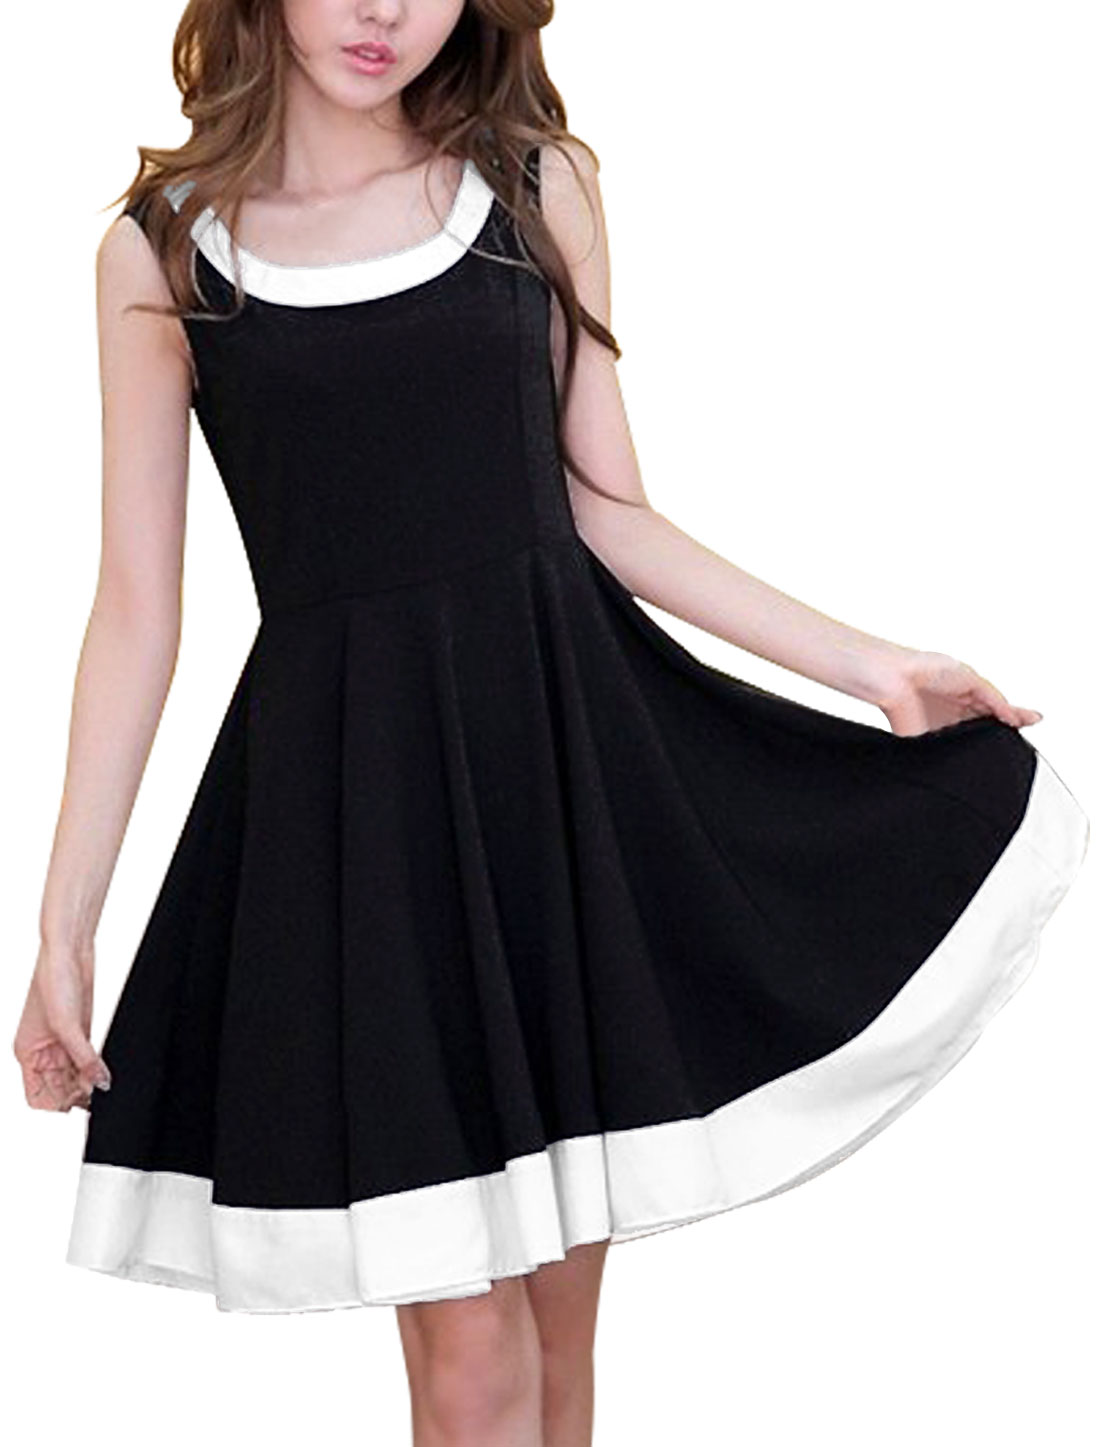 Women Scoop Neck Sleeveless Hidden Zipper Side Colorblock Dress Black S